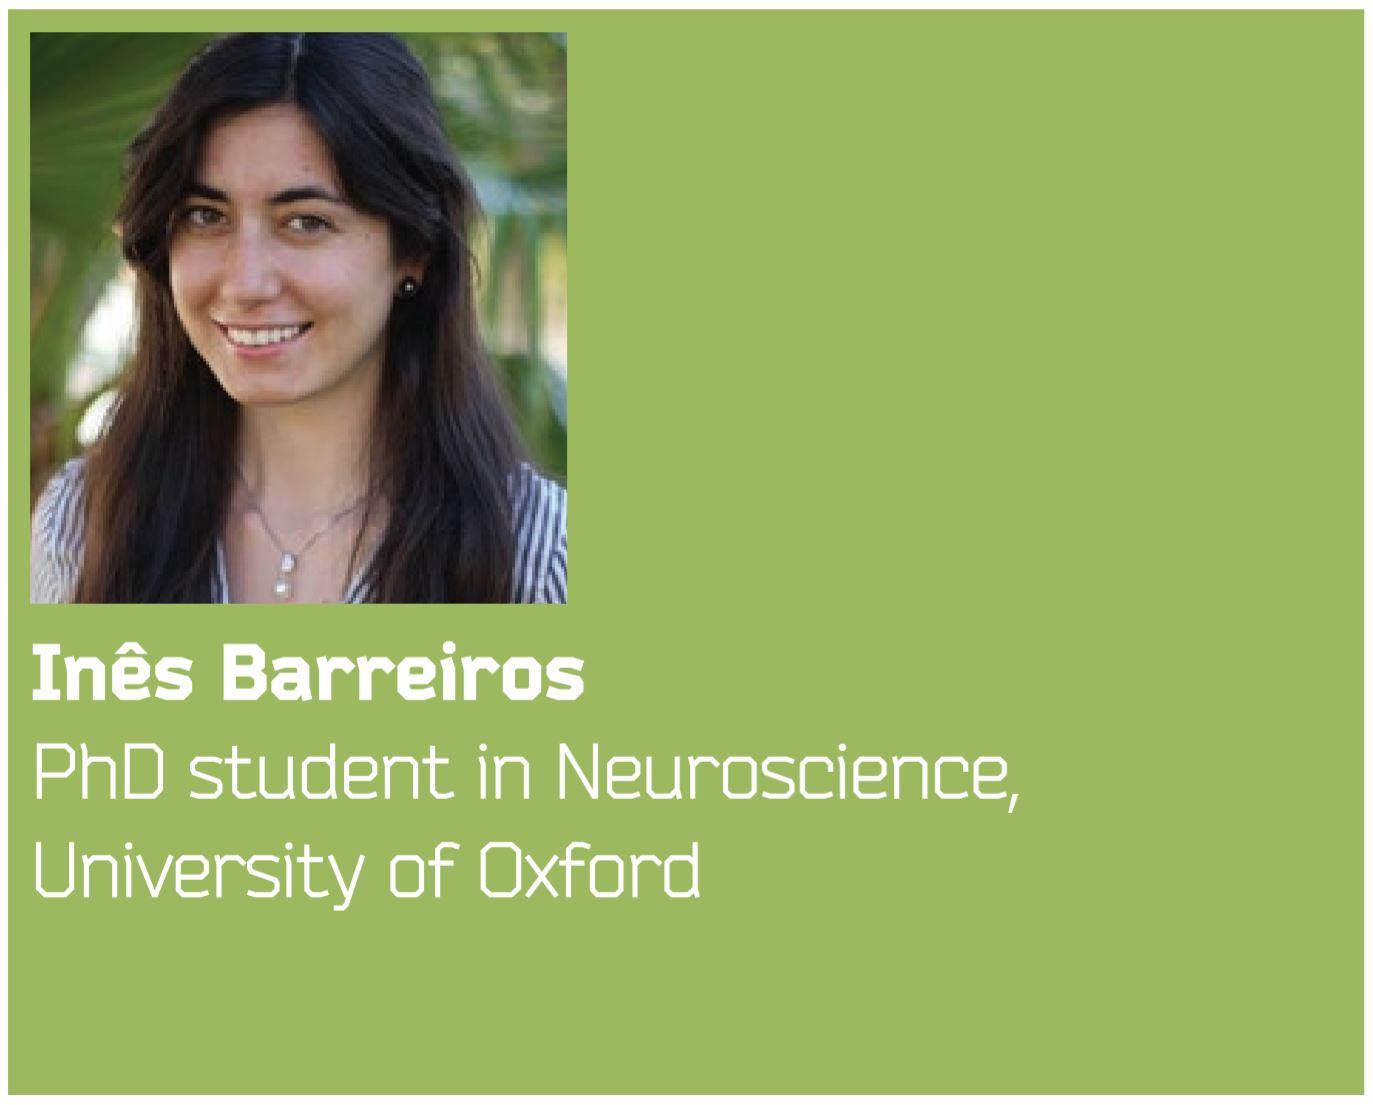 Ines Barreiros PhD student in Neuroscience, University of Oxford